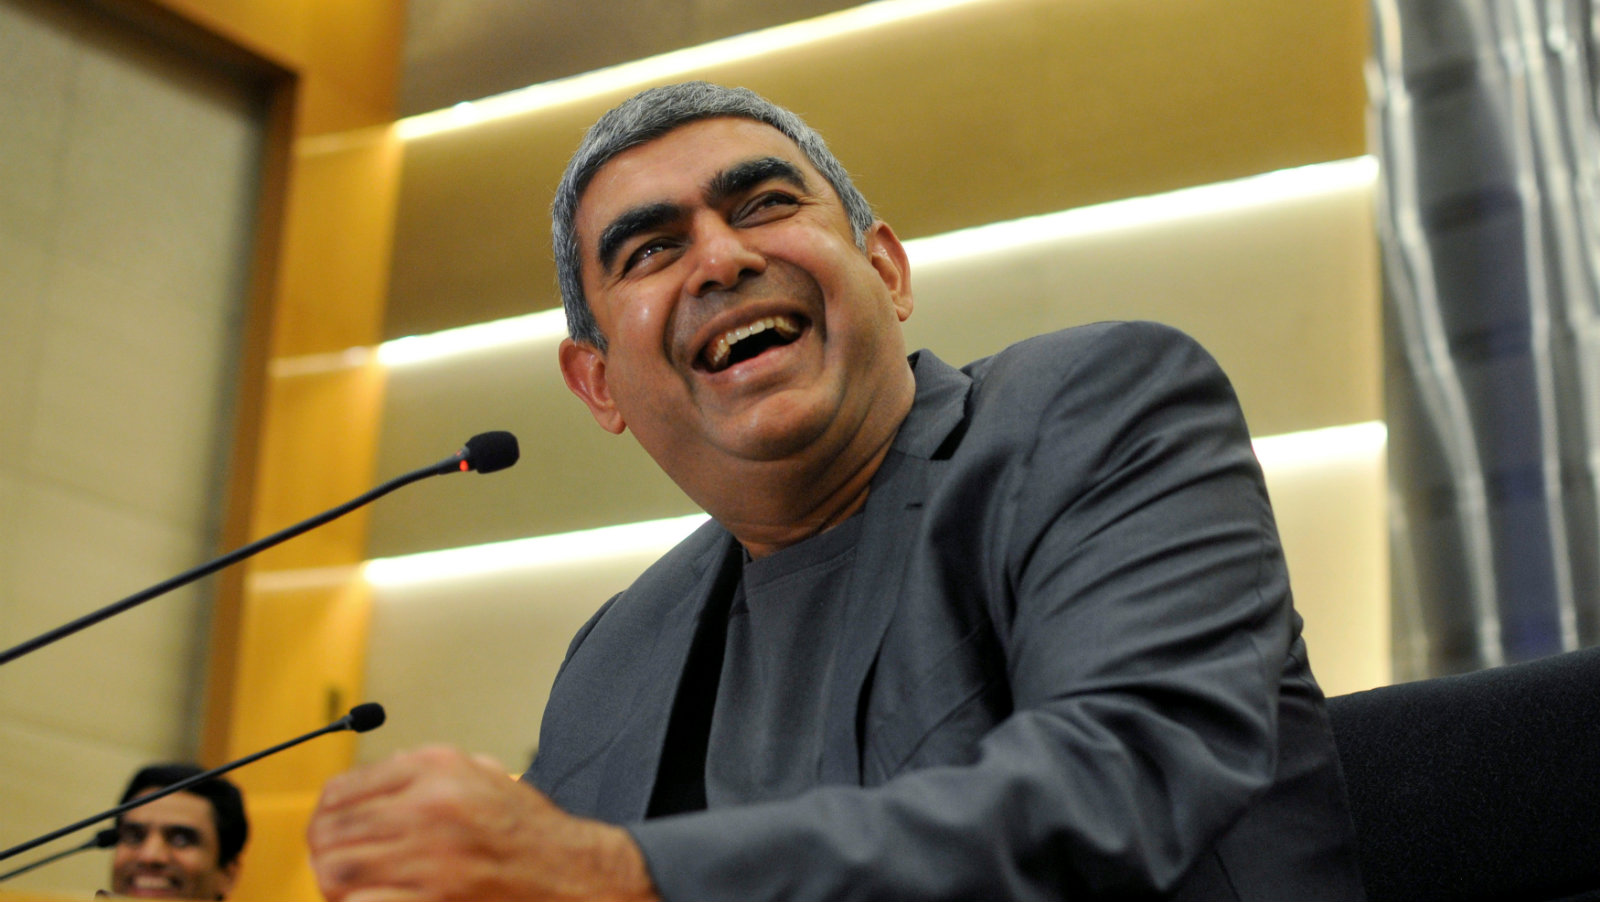 Infosys Chief Executive Vishal Sikka laughs during the announcement of the company's quarter results at its headquarters in Bengaluru, India, April 15, 2016. India's second-largest IT services firm Infosys forecast strong revenue growth and reported its third successive estimate-beating earnings on new client wins, solidifying a recovery that began a year ago under its new chief executive.